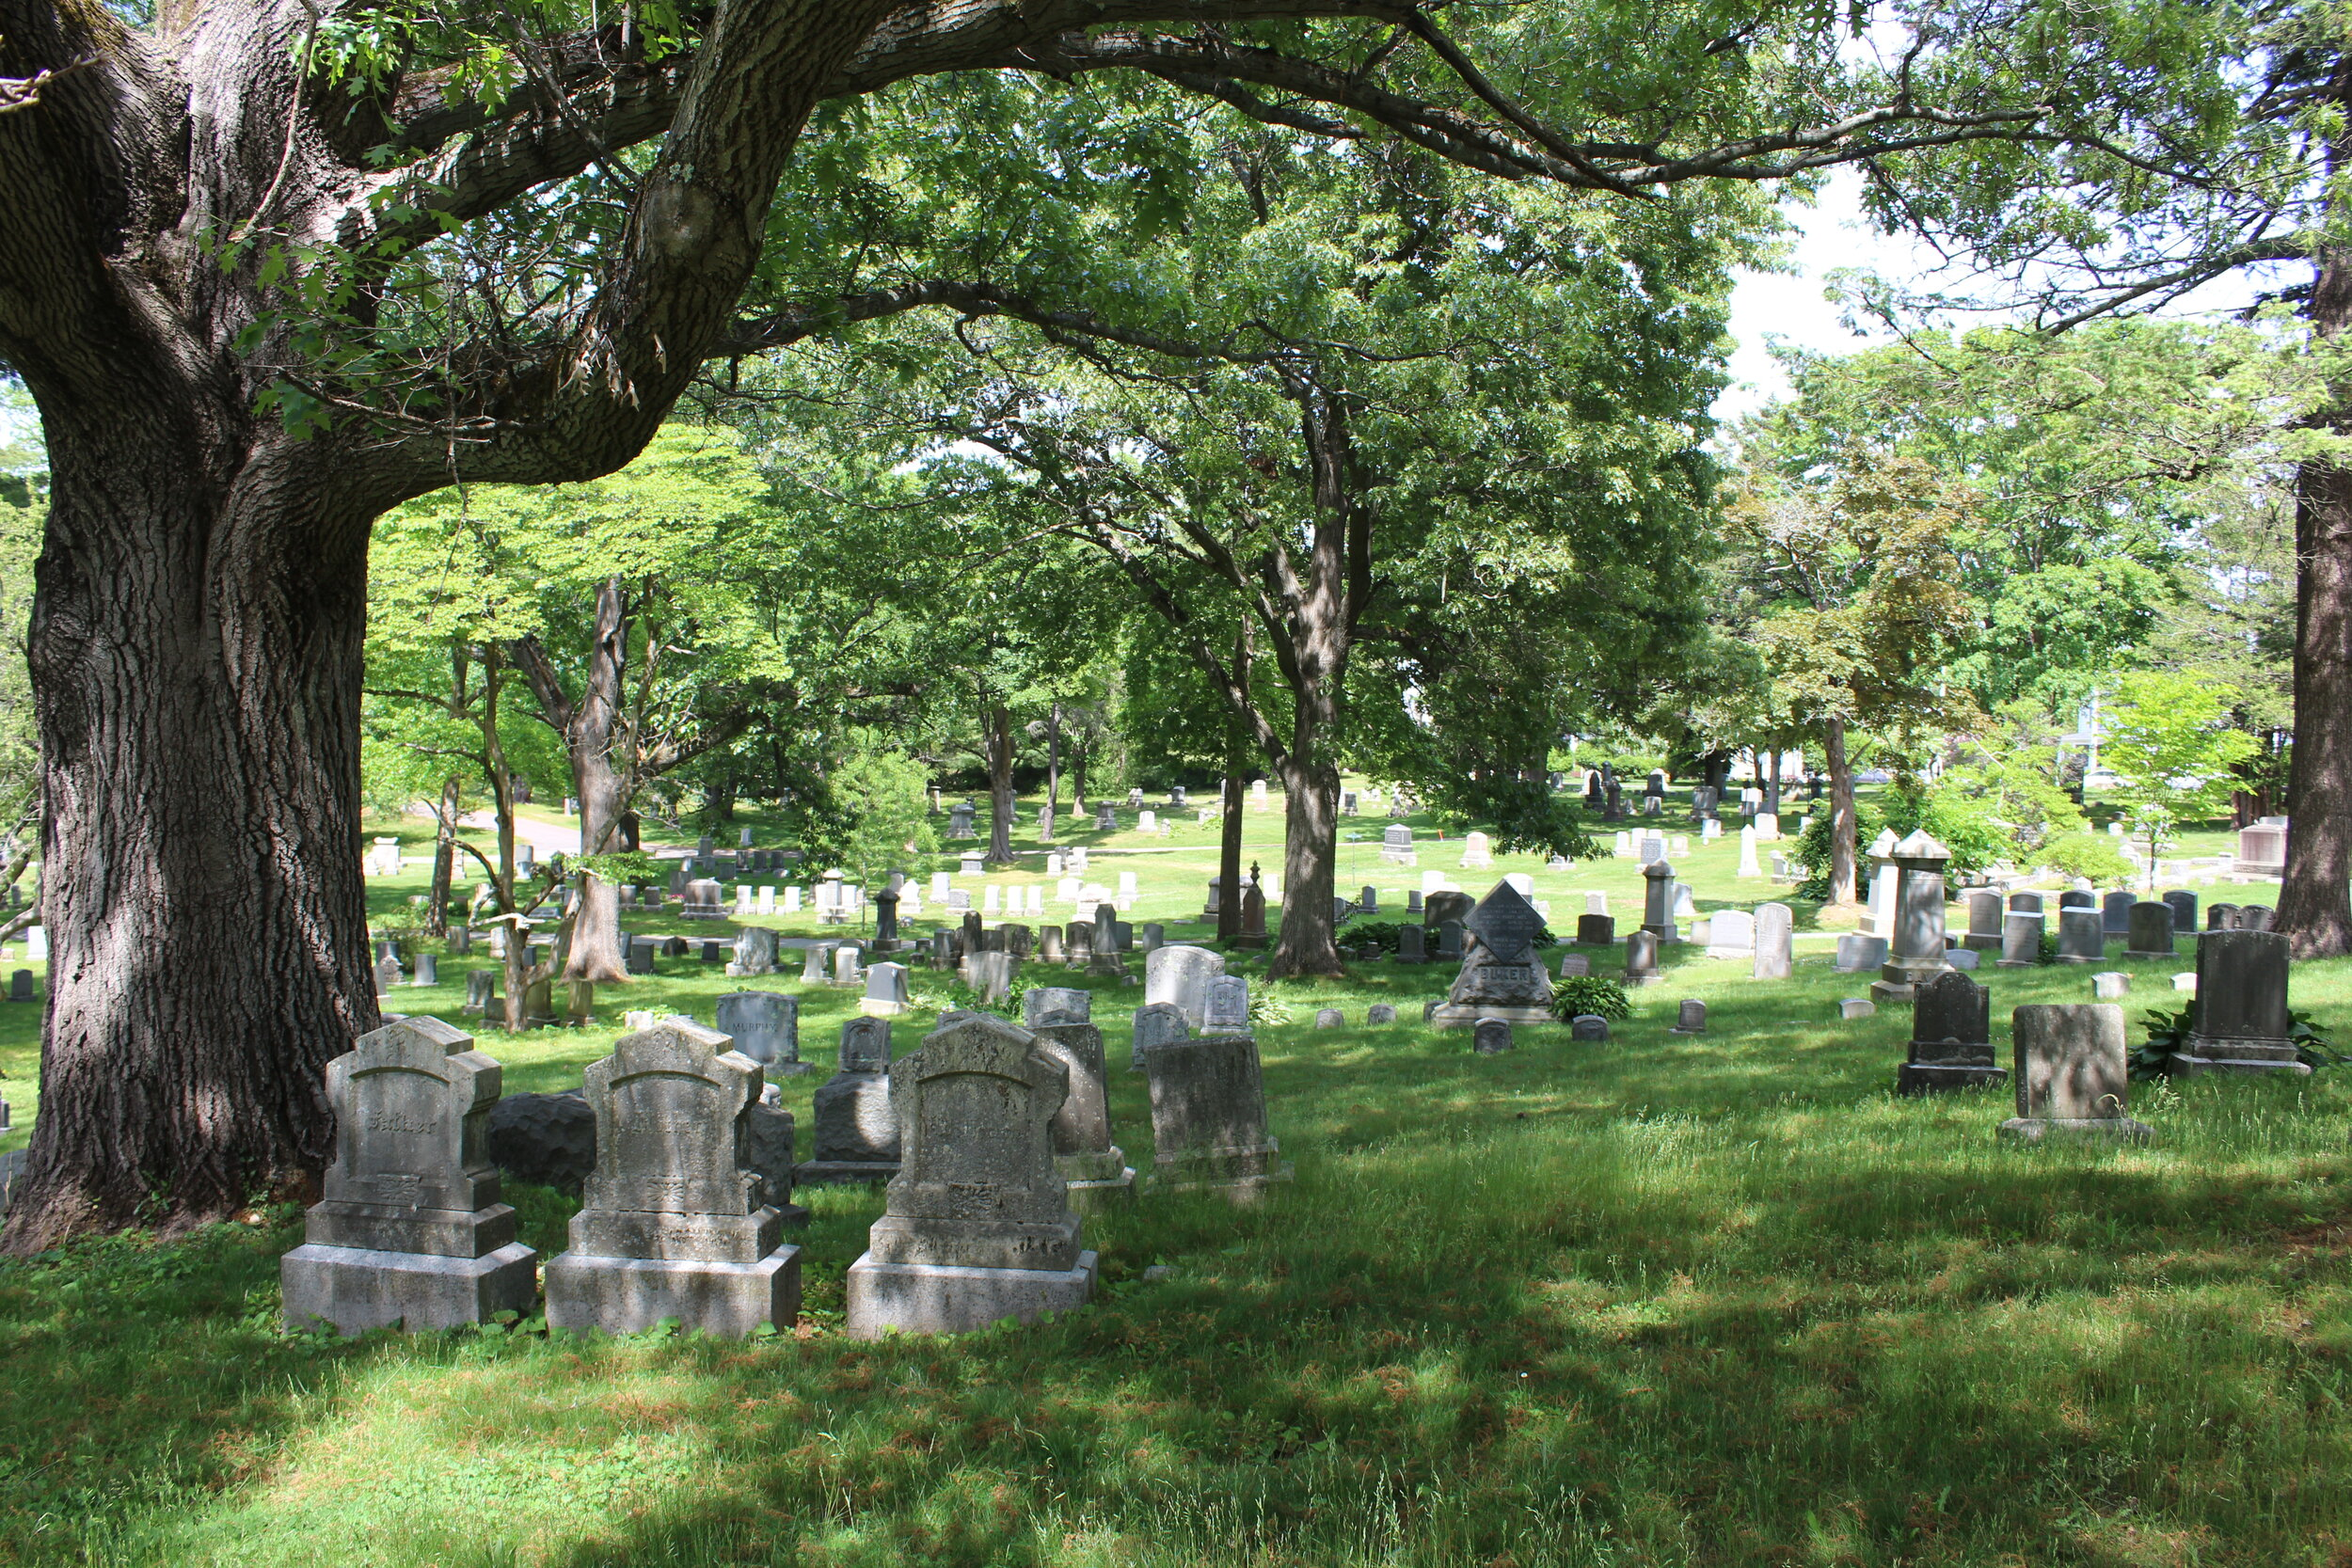 Gravestones surrounded by trees